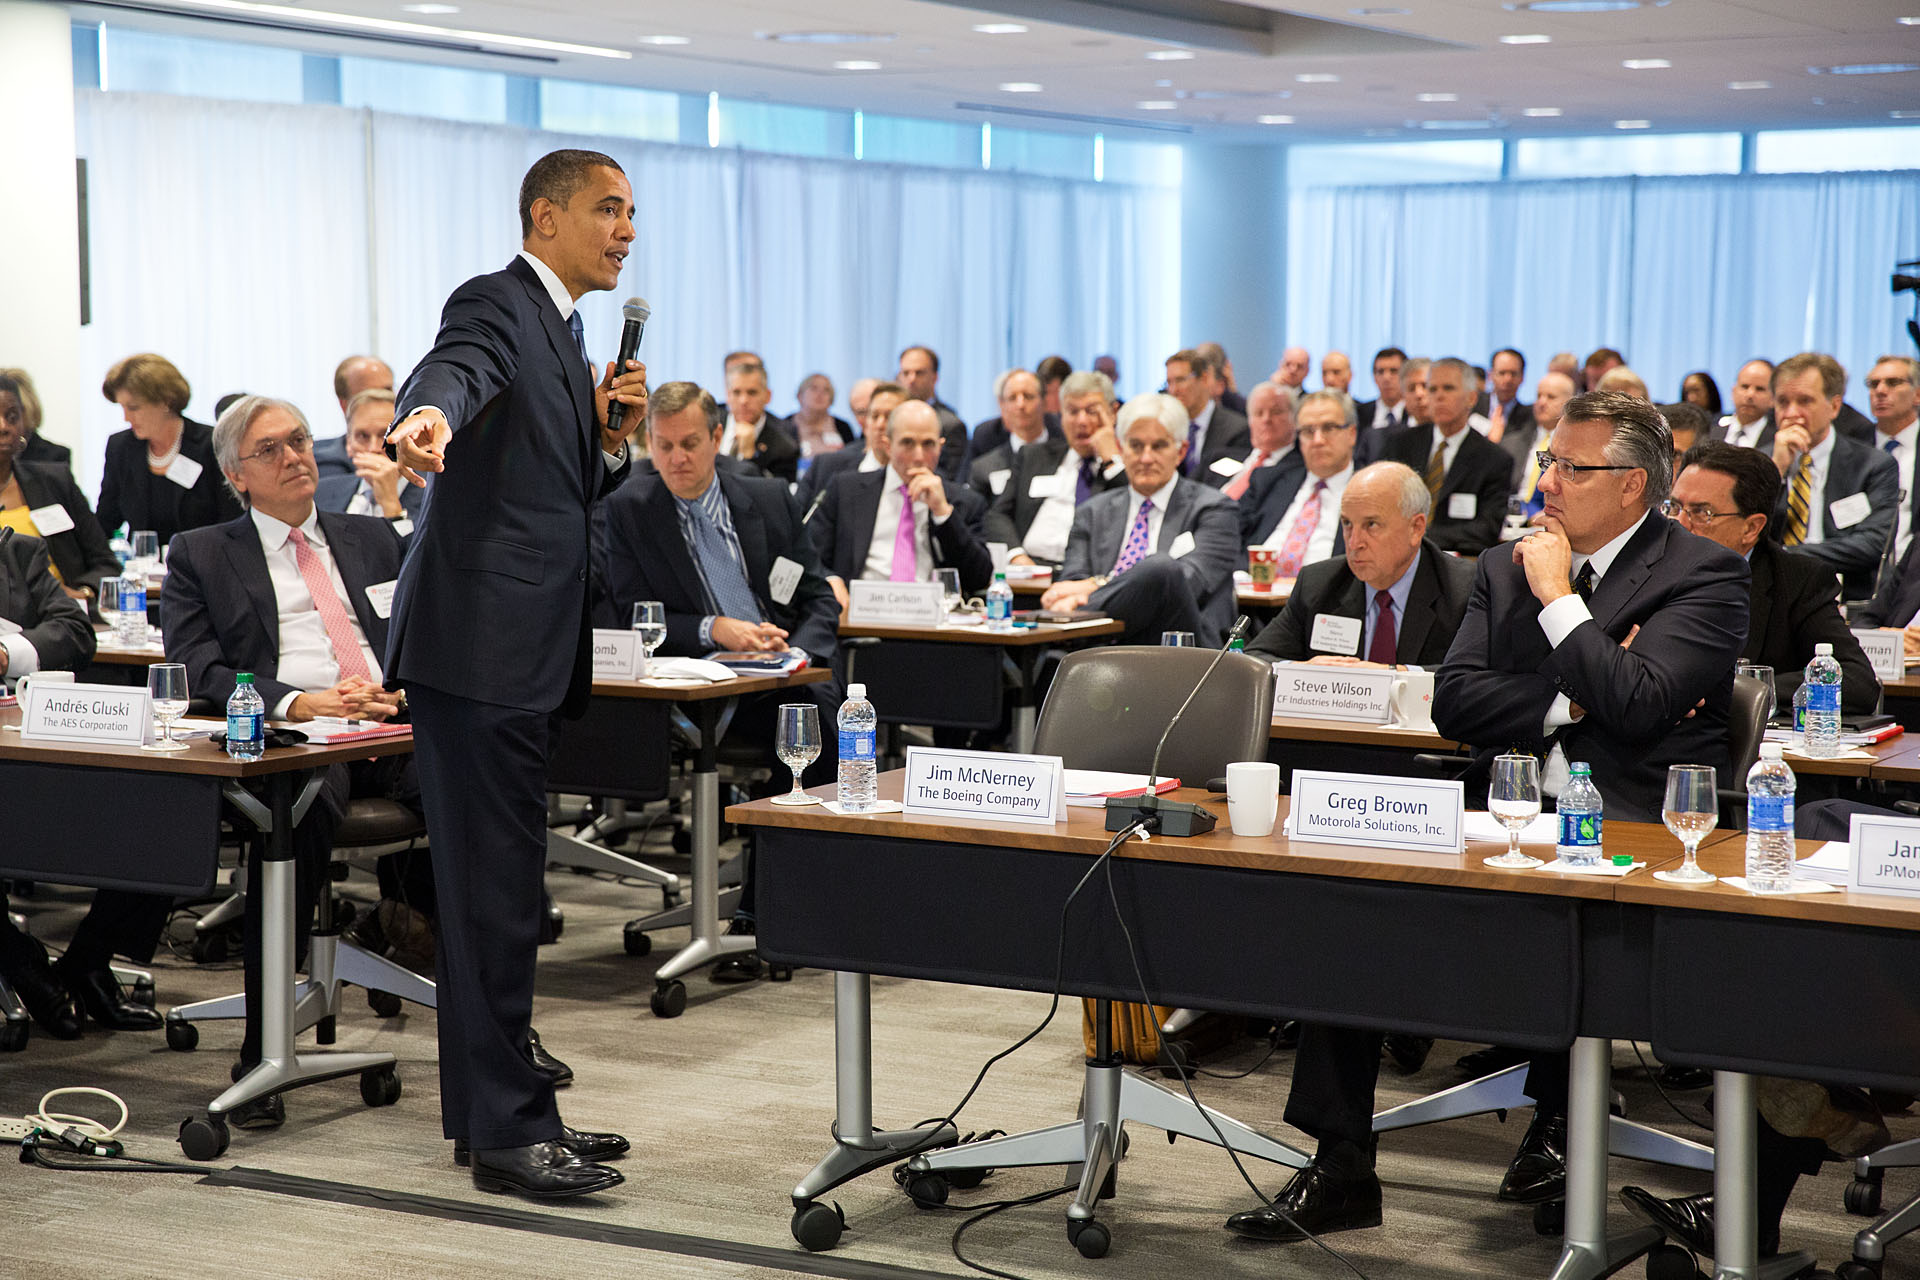 President Barack Obama delivers remarks and takes questions from business leaders